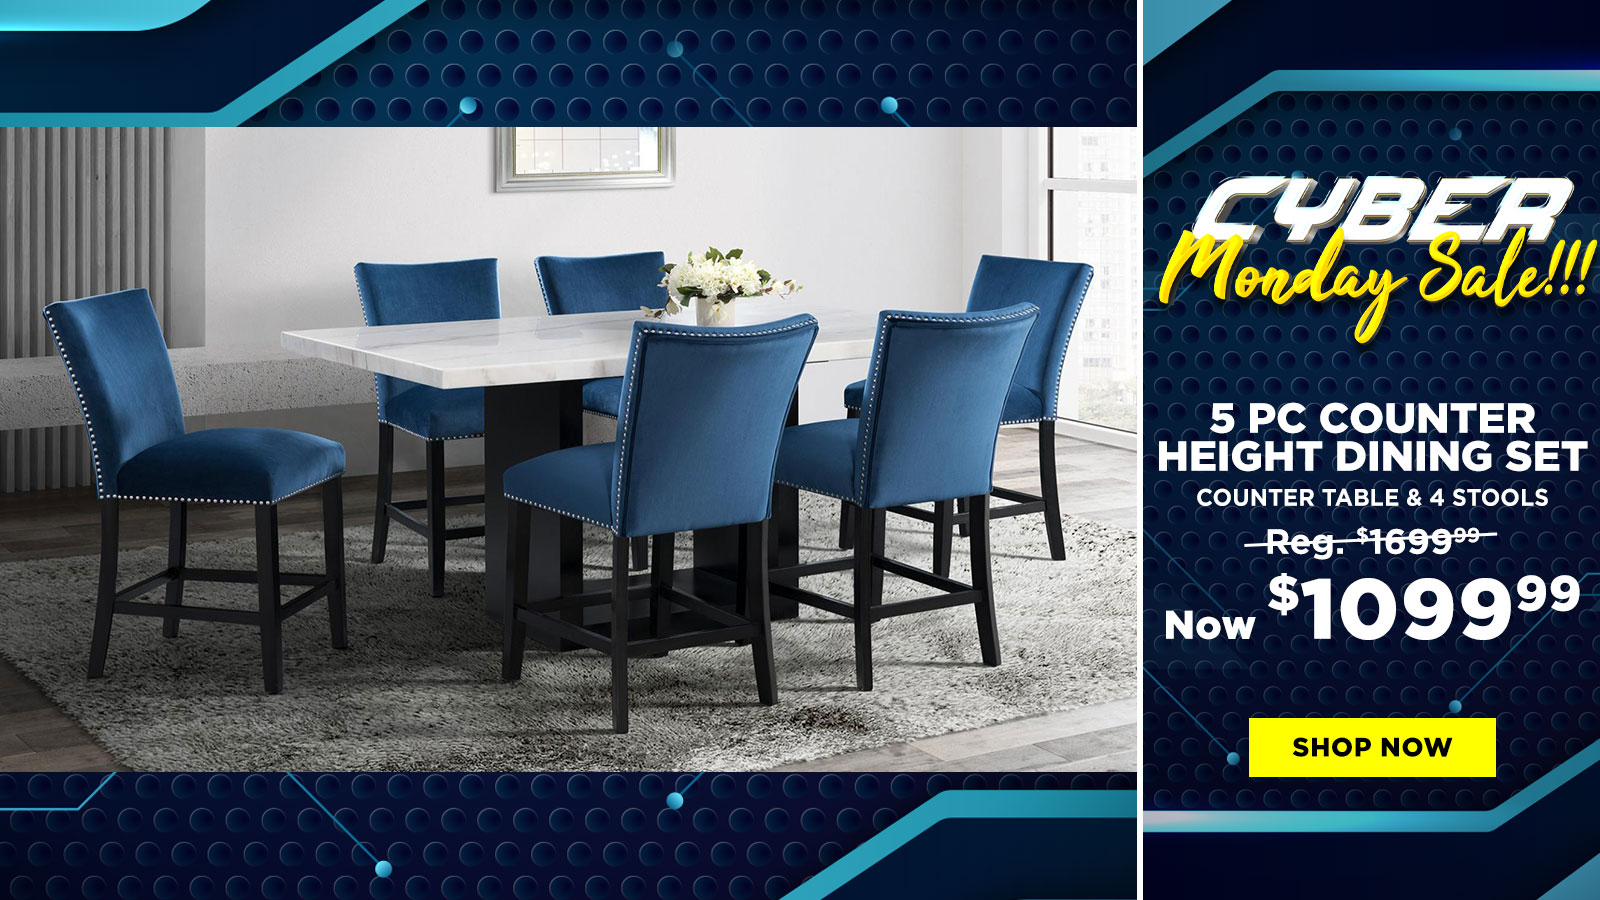 5 Pc Counter Height Dining Set $1099.99